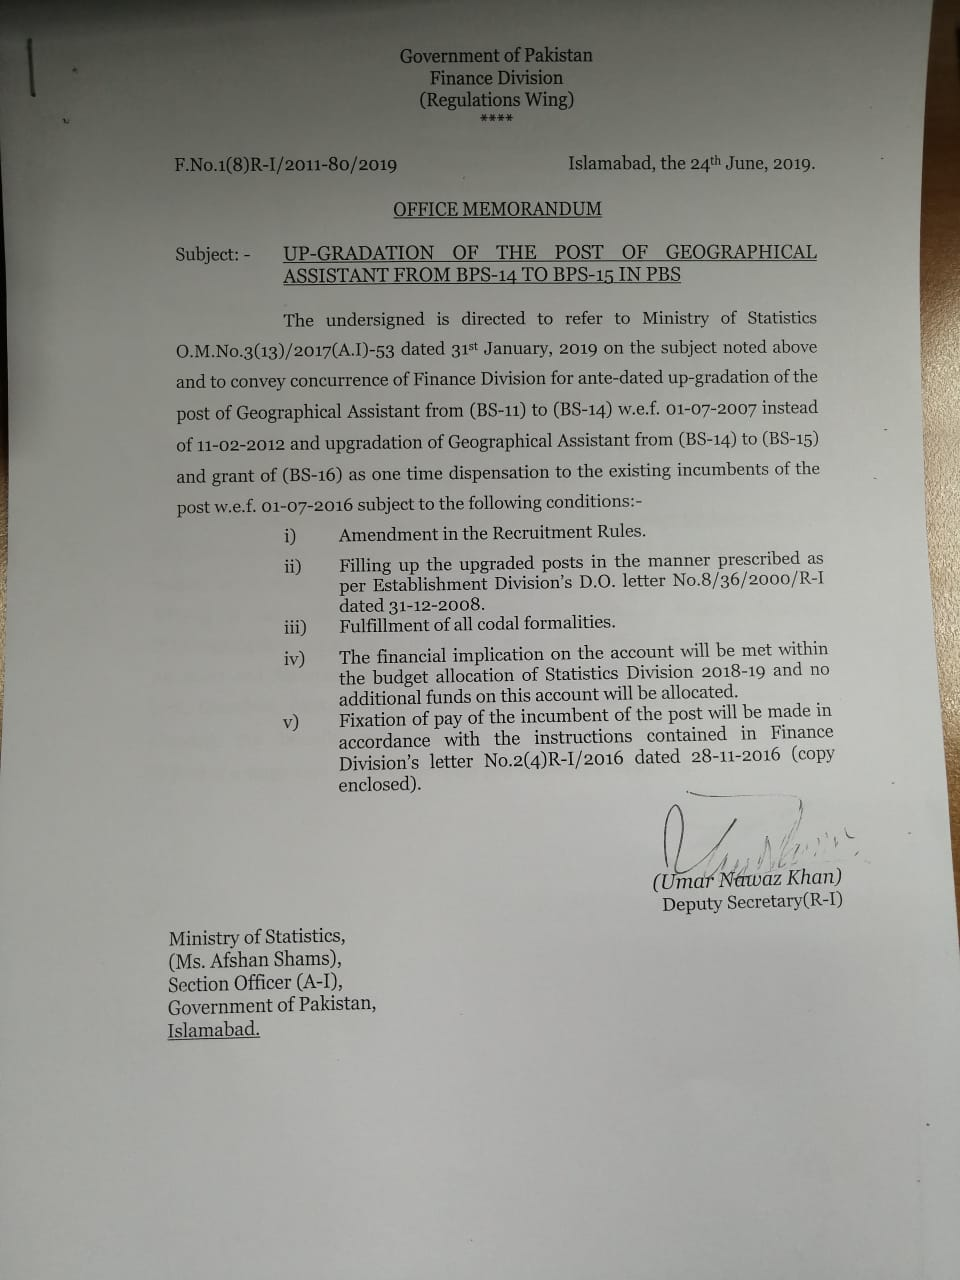 Notification of Upgradation of the Post of Geographical Assistant